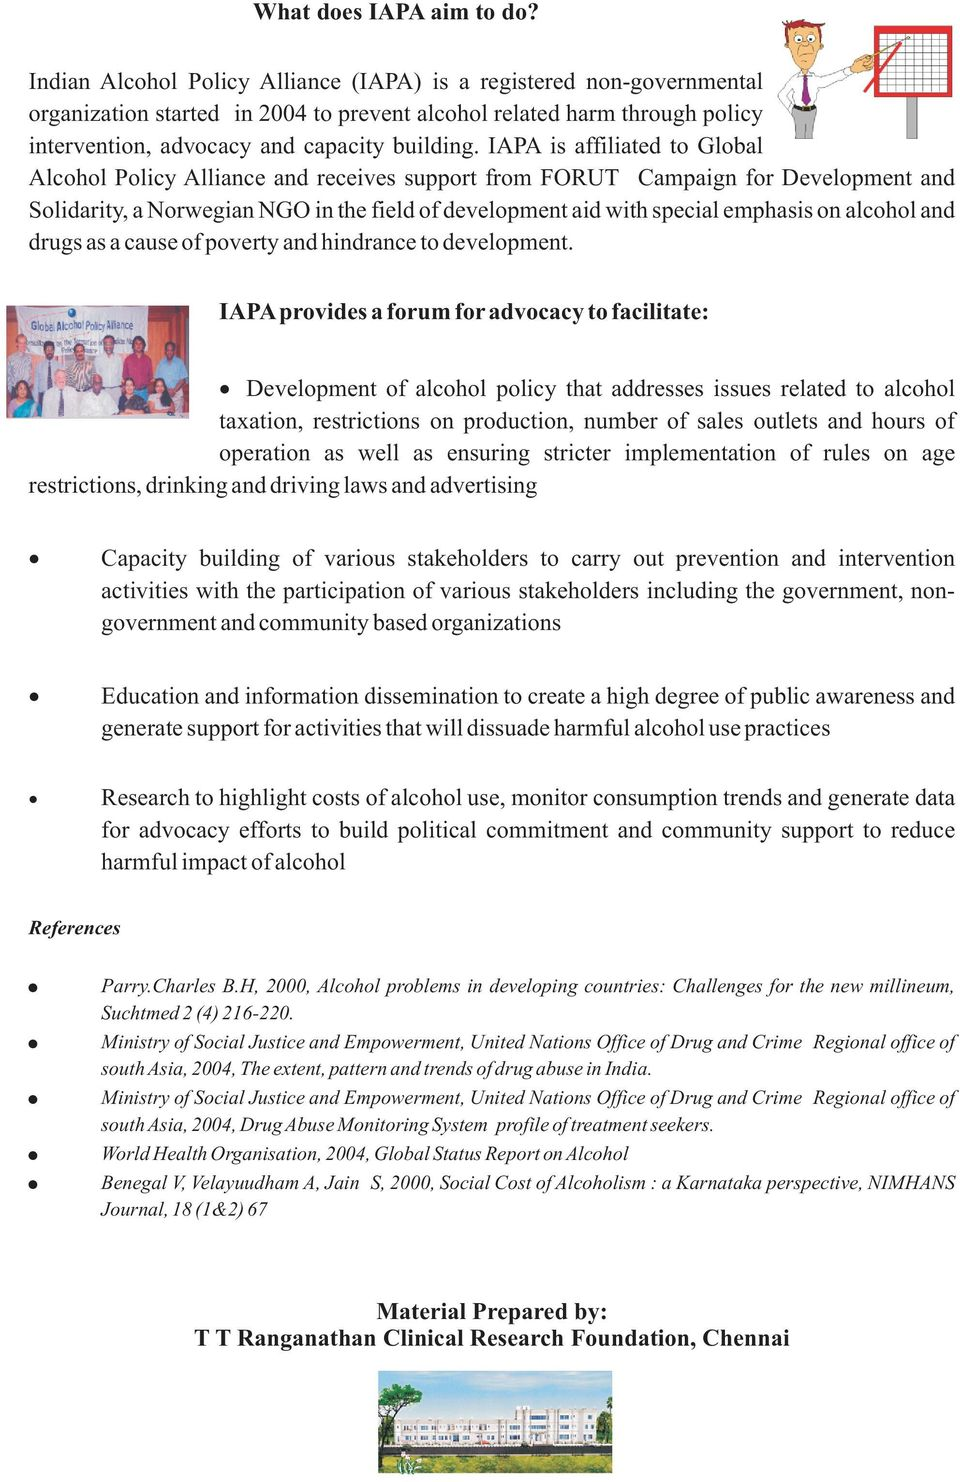 IAPA is affiliated to Global Alcohol Policy Alliance and receives support from FORUT Campaign for Development and Solidarity, a Norwegian NGO in the field of development aid with special emphasis on